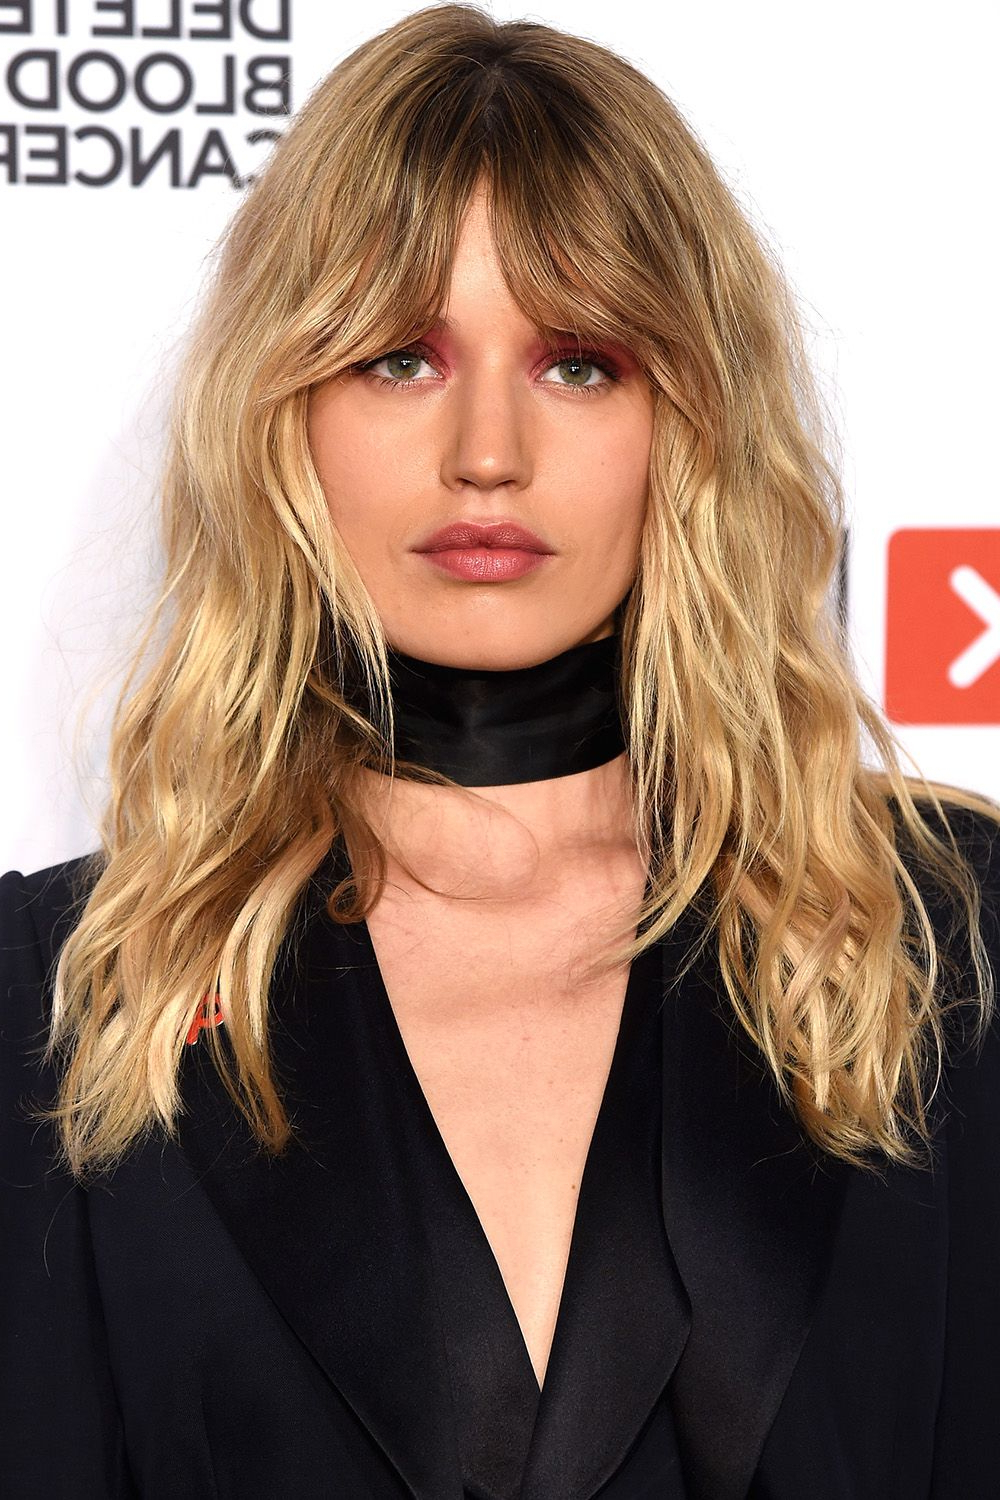 40 Best Medium Hairstyles – Celebrities With Shoulder Length Haircuts Intended For Chin Length Layered Haircuts (View 15 of 20)